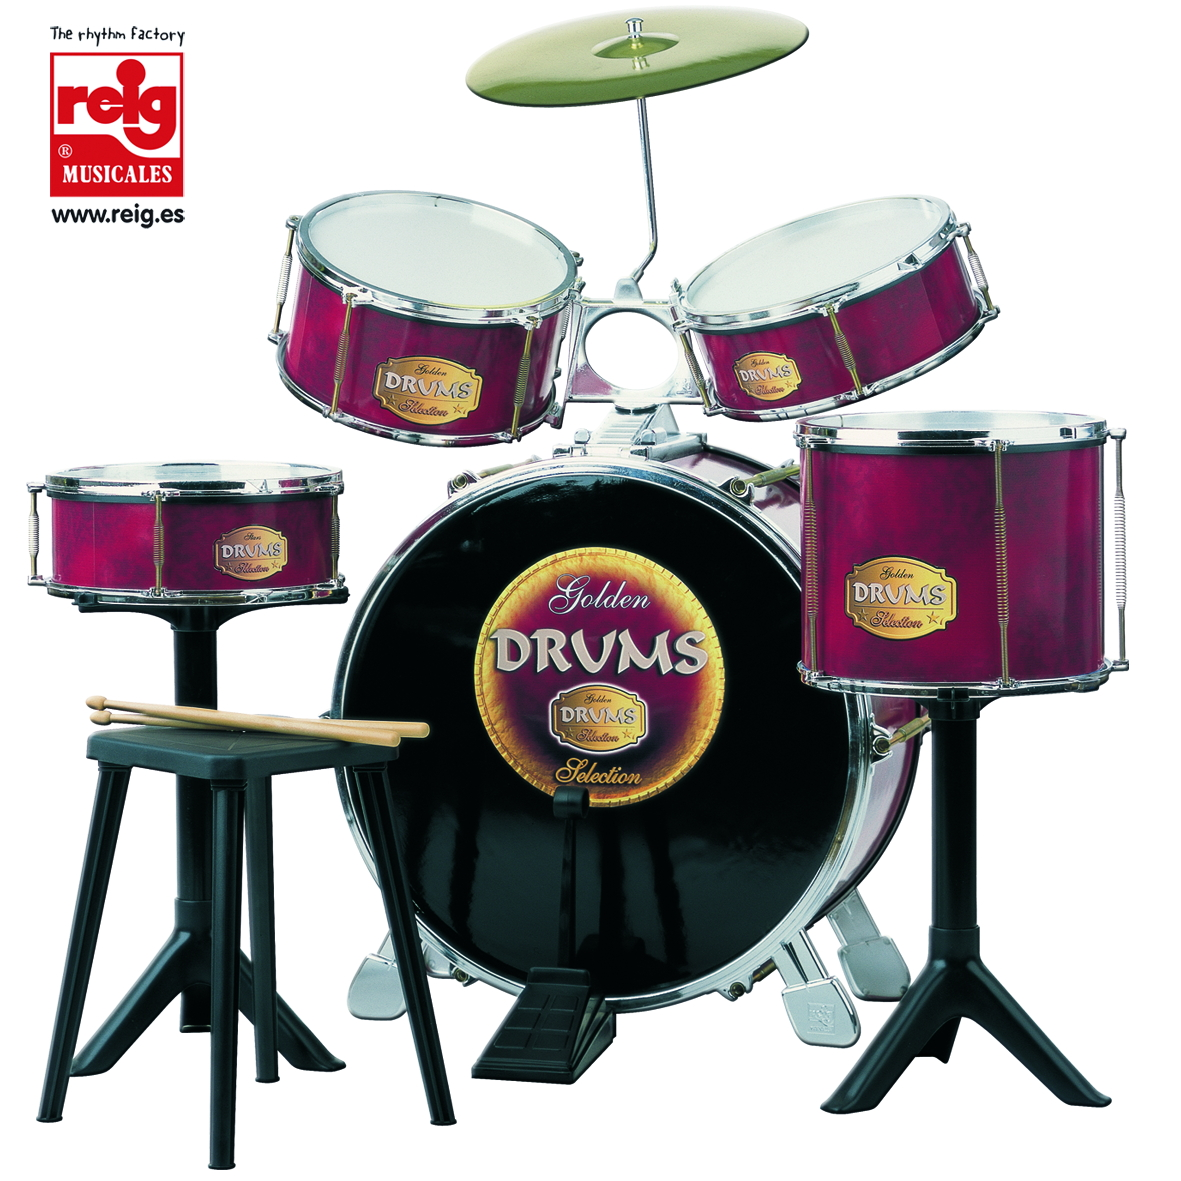 726  GRAN BATERIA GOLDEN DRUMS